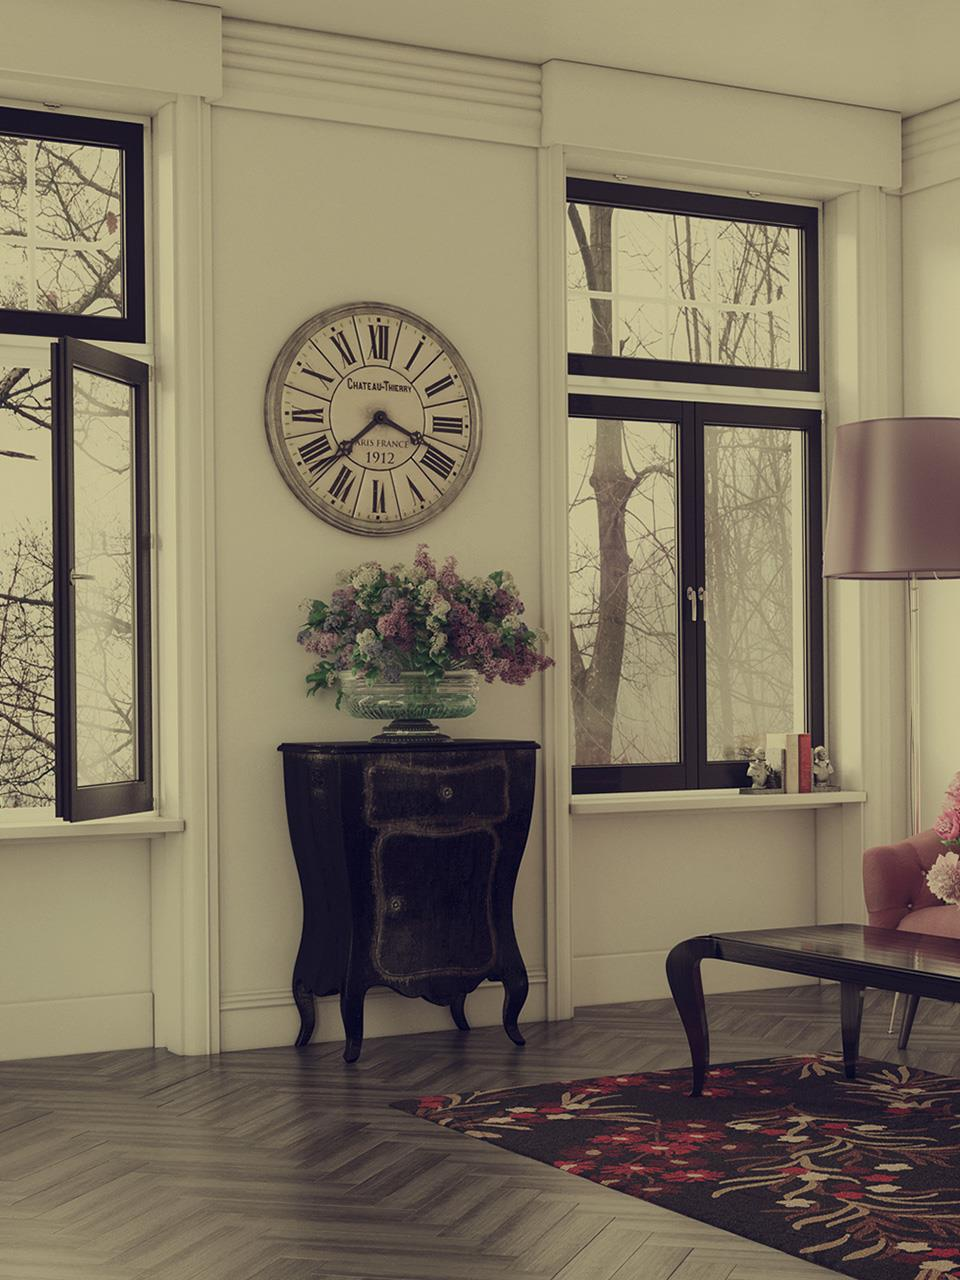 How To Decorate With Wall Clocks